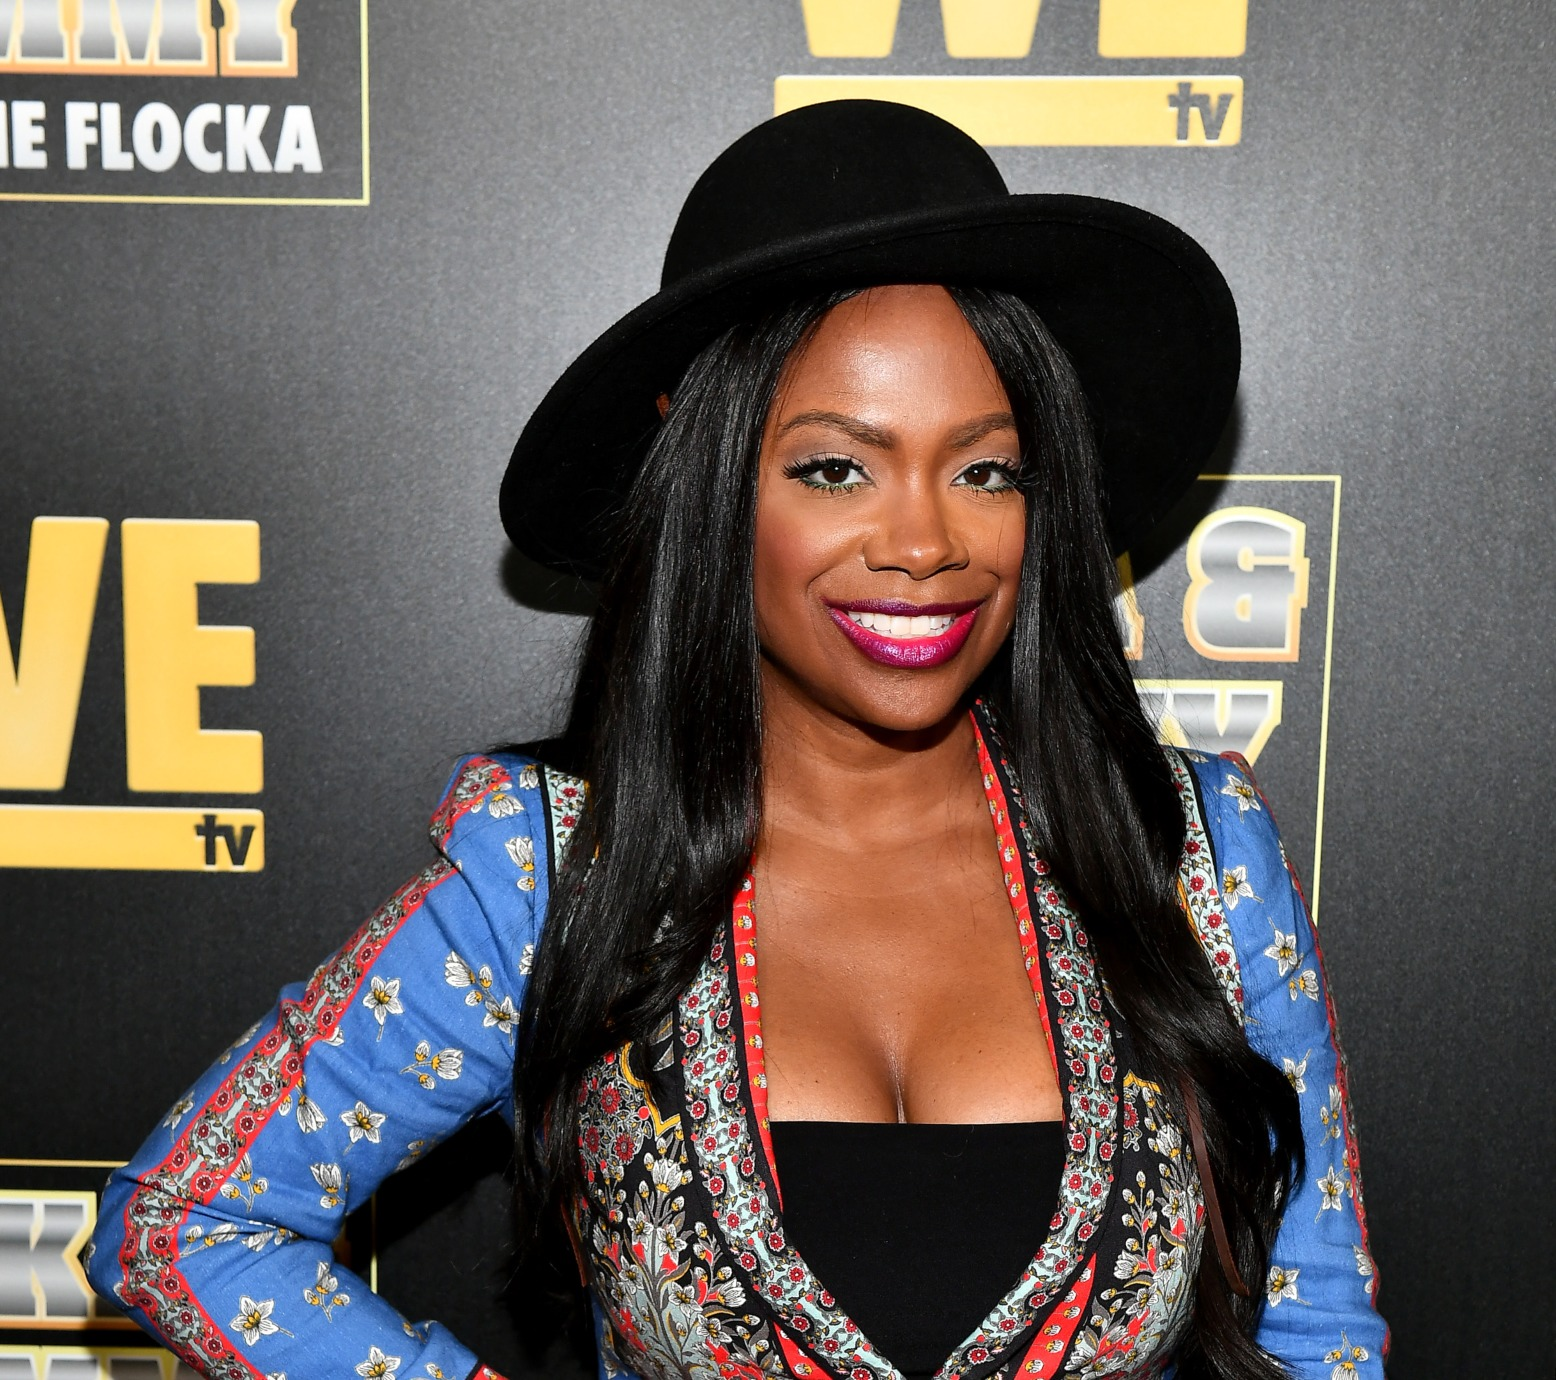 Kandi Burruss Shares A New 'Speak On It Episode' On YouTube